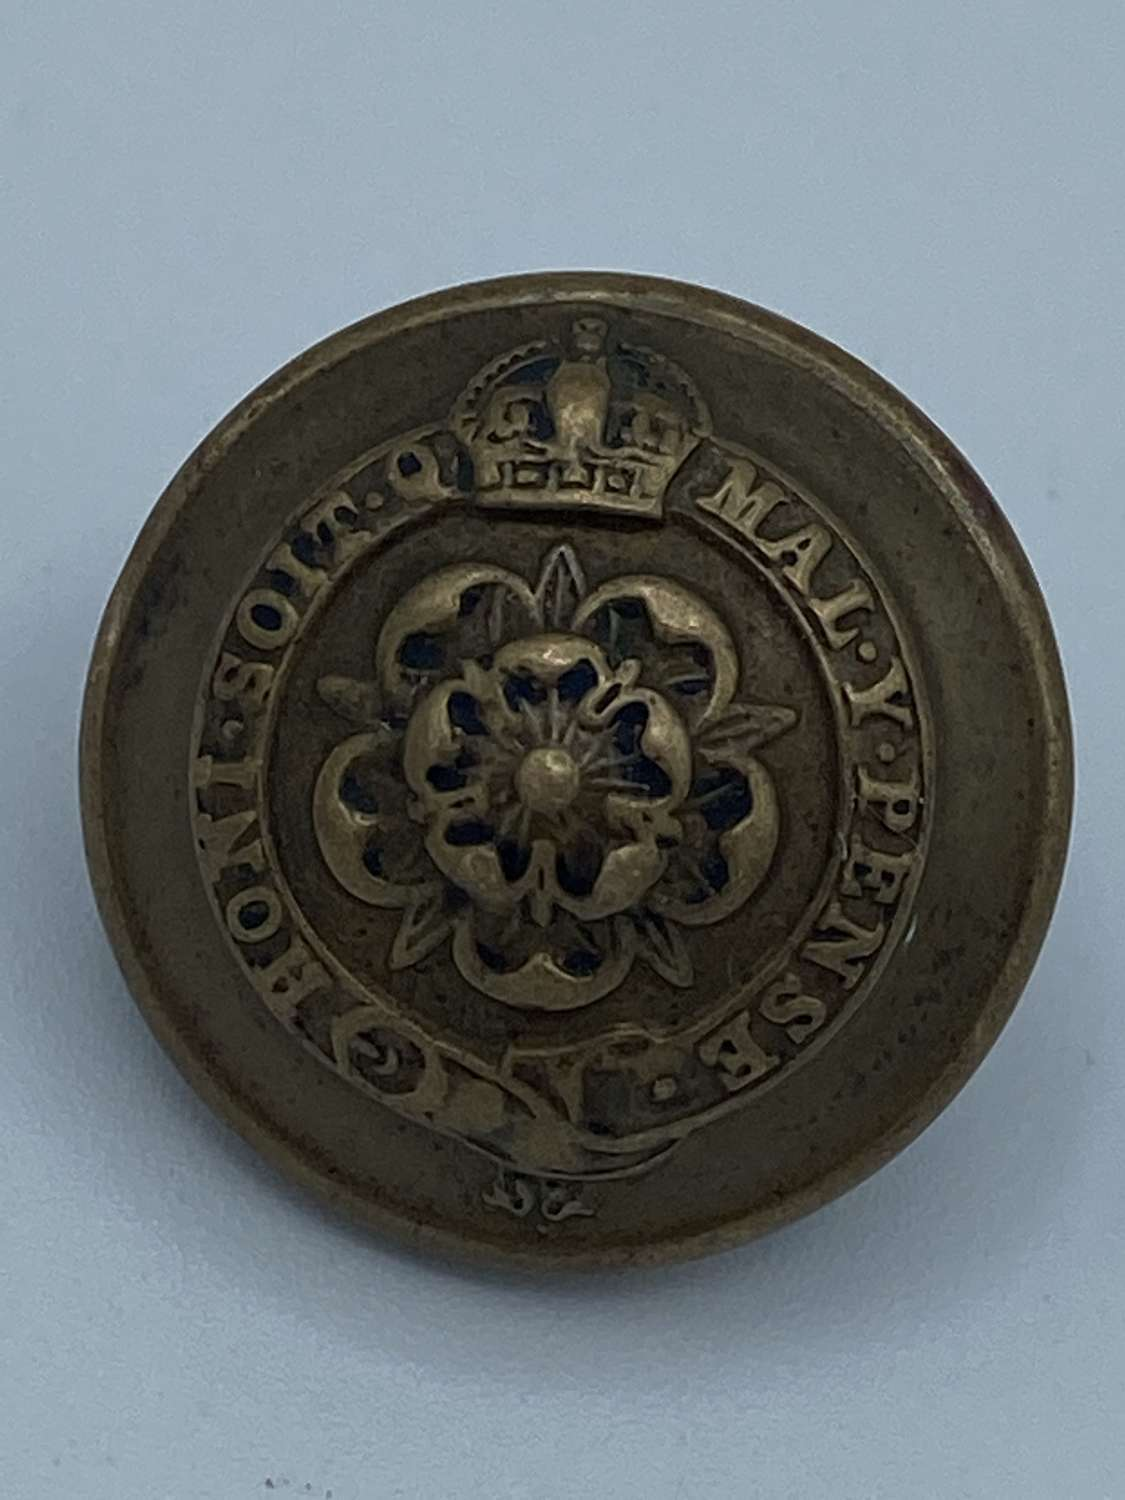 WW1 Royal Fusiliers Button J R Guant & Son Large Tunic Button